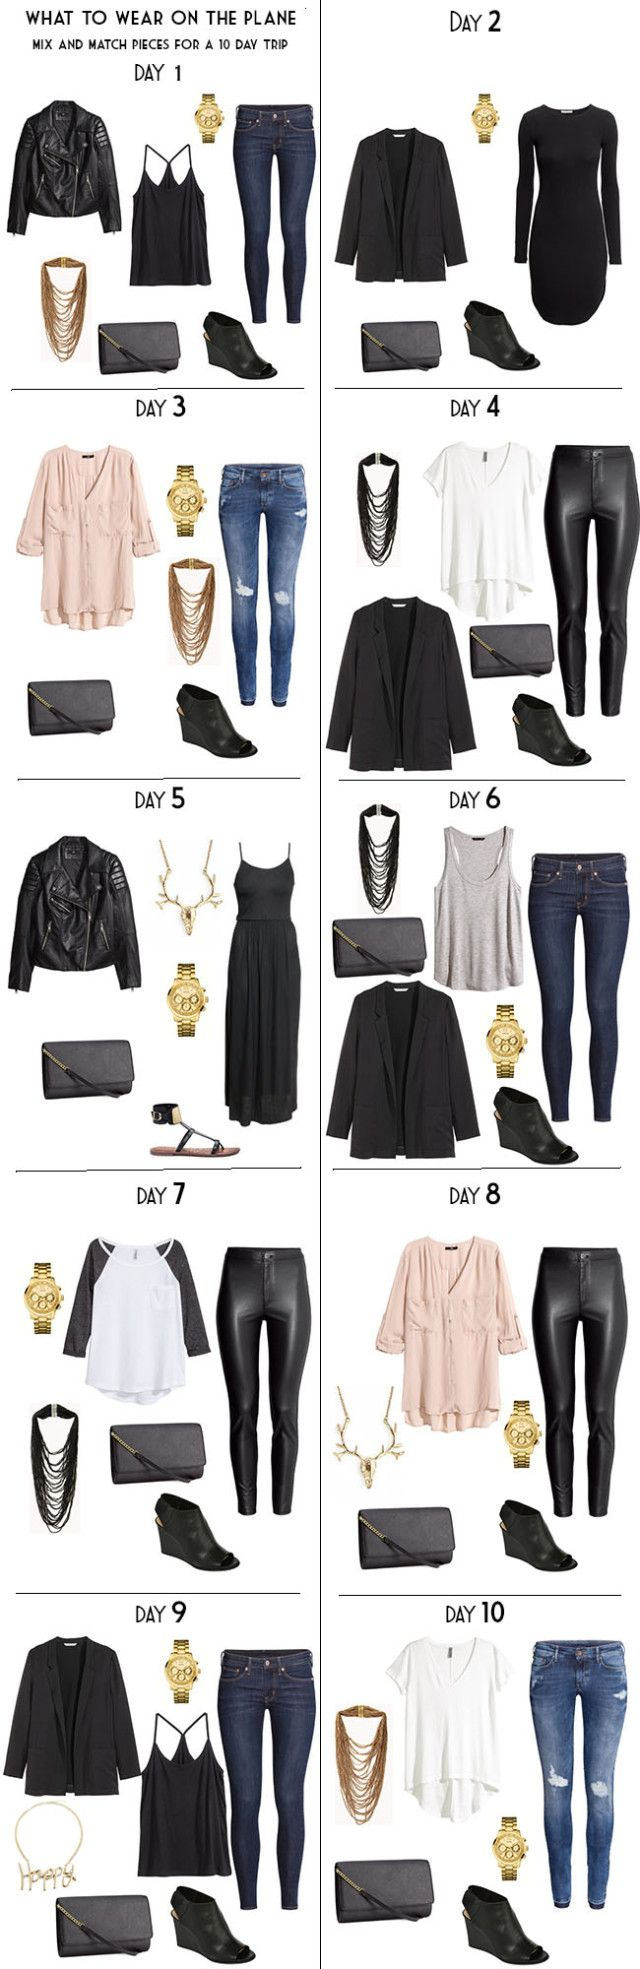 10 Day Packing List 20 pieces in a carry-on for Night wear built from my Capsule wardrobe. #packinglist #travellight #capsule